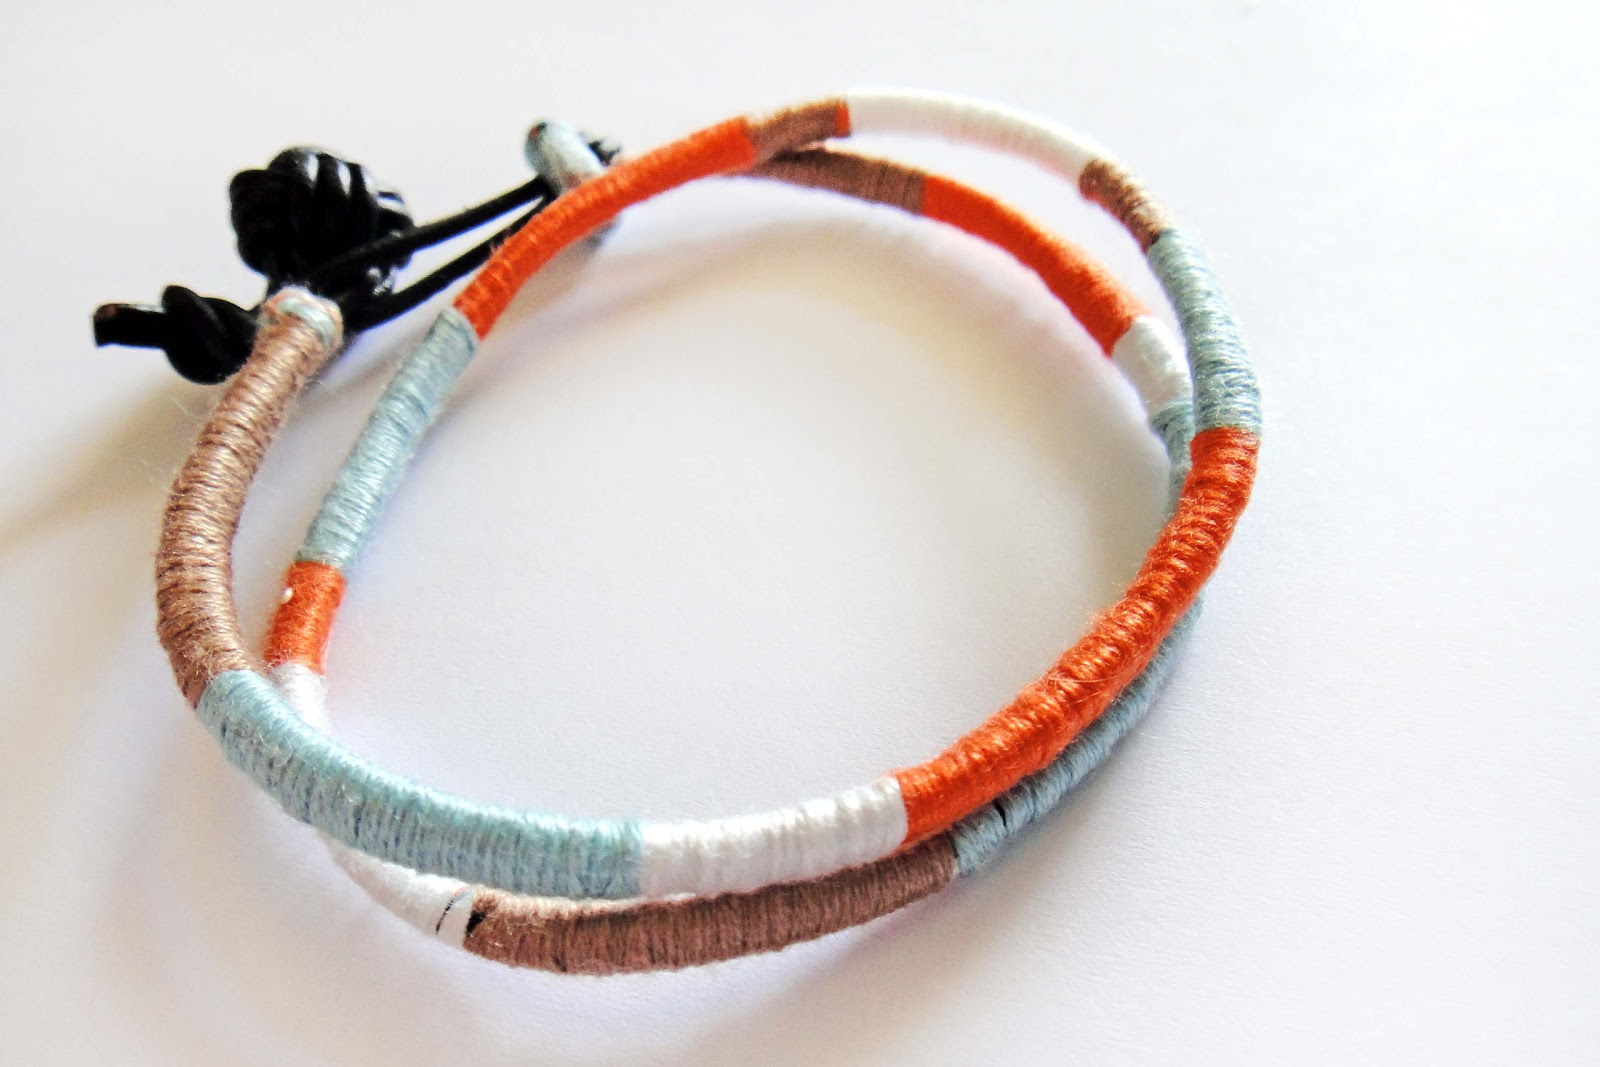 the embroidery thread hare bracelet tutorial blocked colorblocked gilded color diy friendship